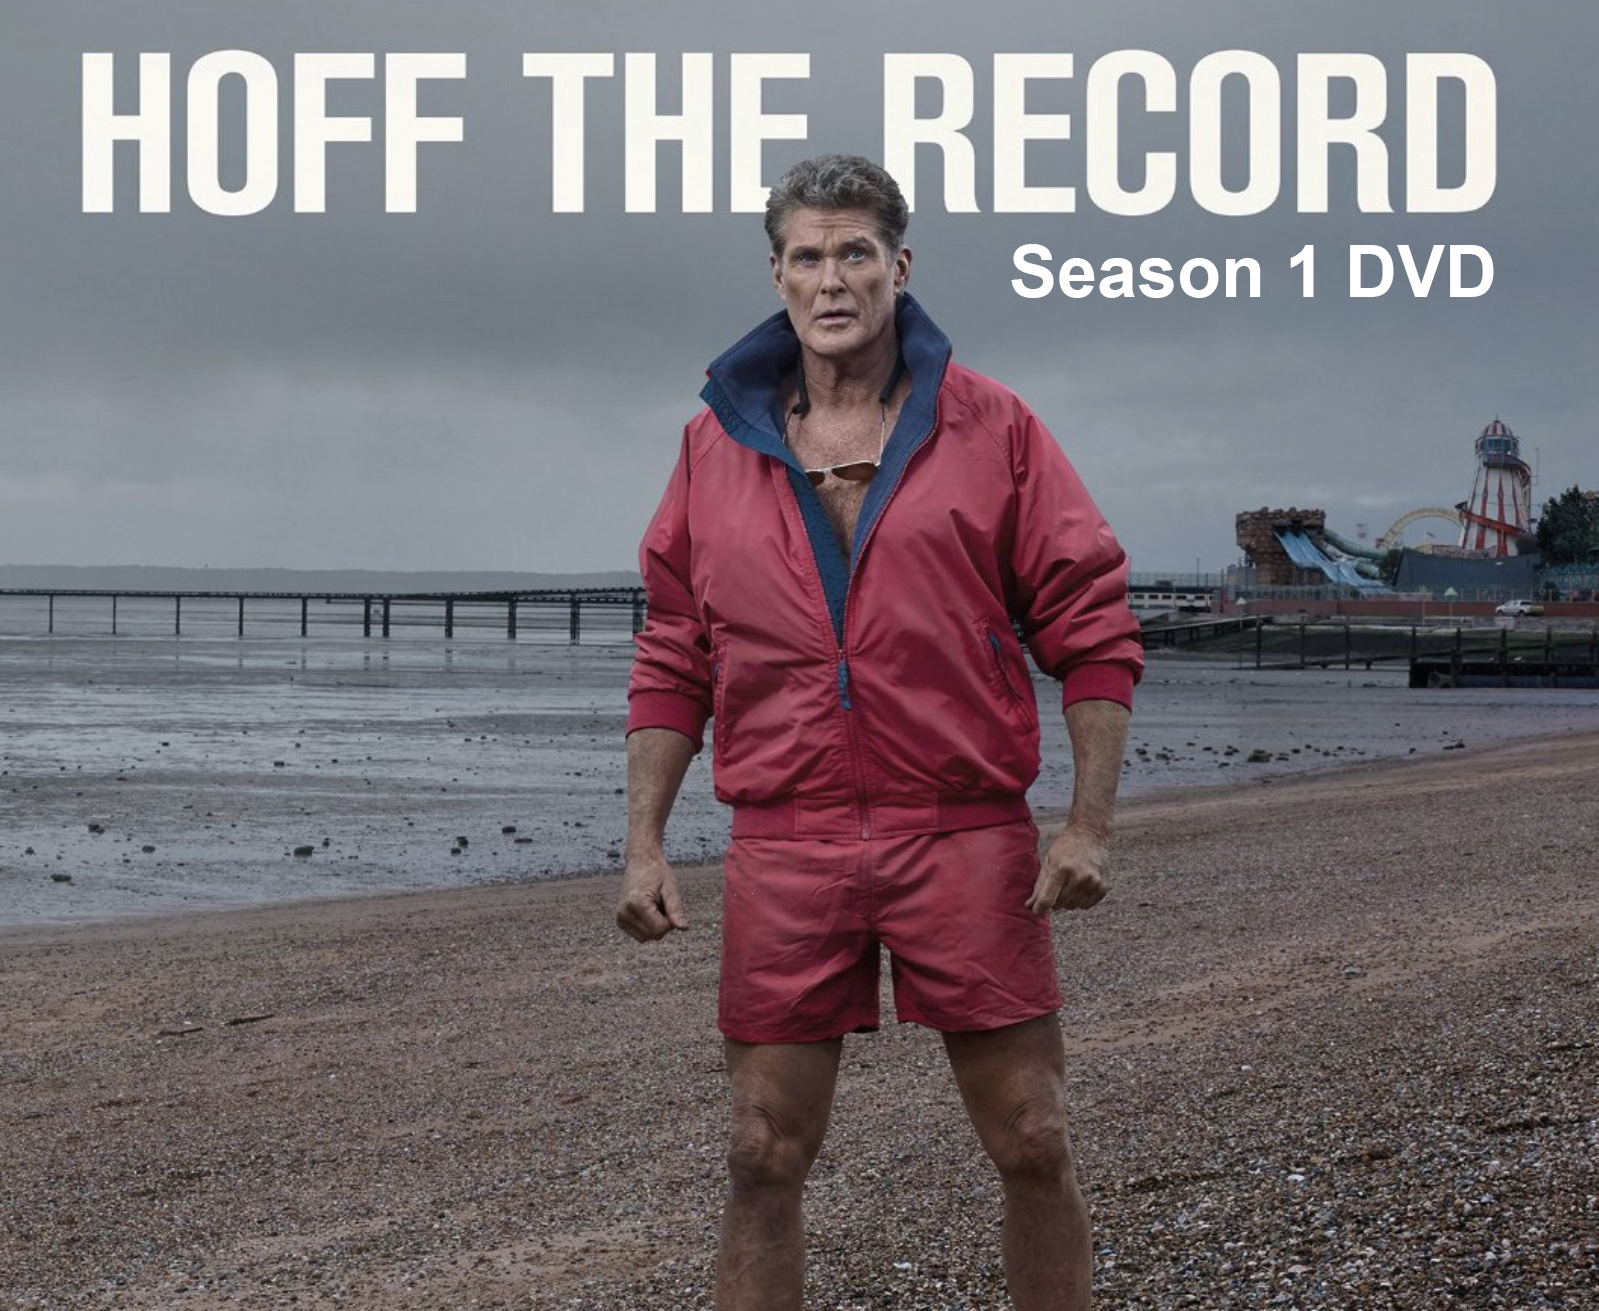 Hoff The Record Season 1 DVD